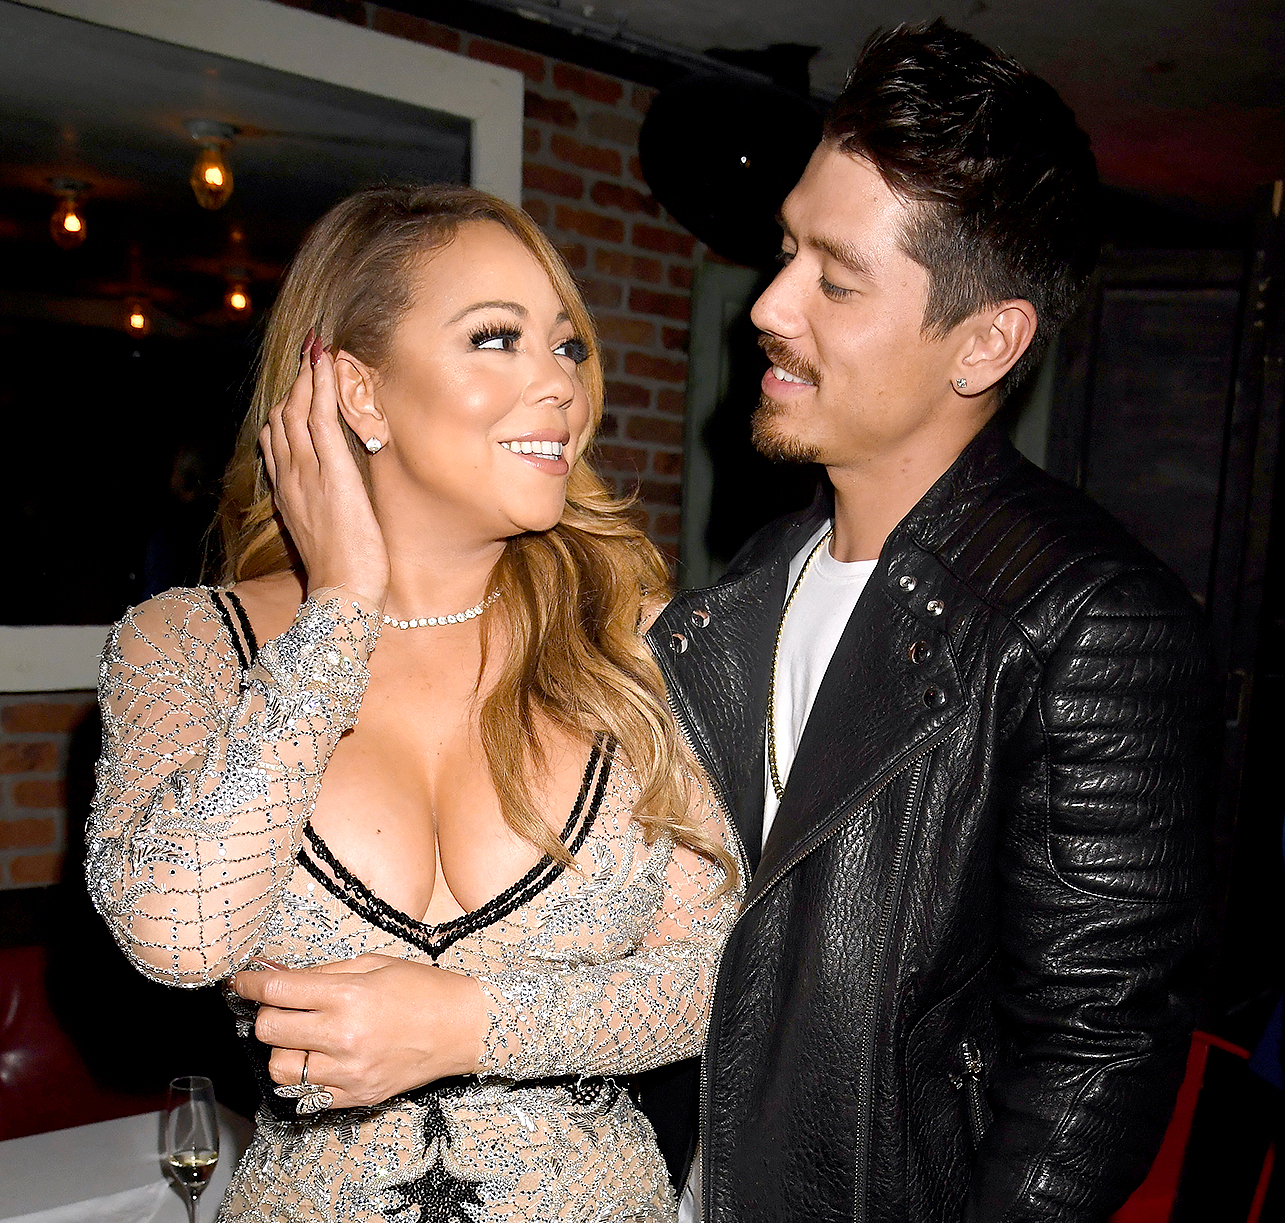 Mariah Carey and choreographer Bryan Tanaka attend the  Mariah s World   viewing party at Catch. Mariah Carey s New Guy Bryan Tanaka Breaks Silence   Loves  Her